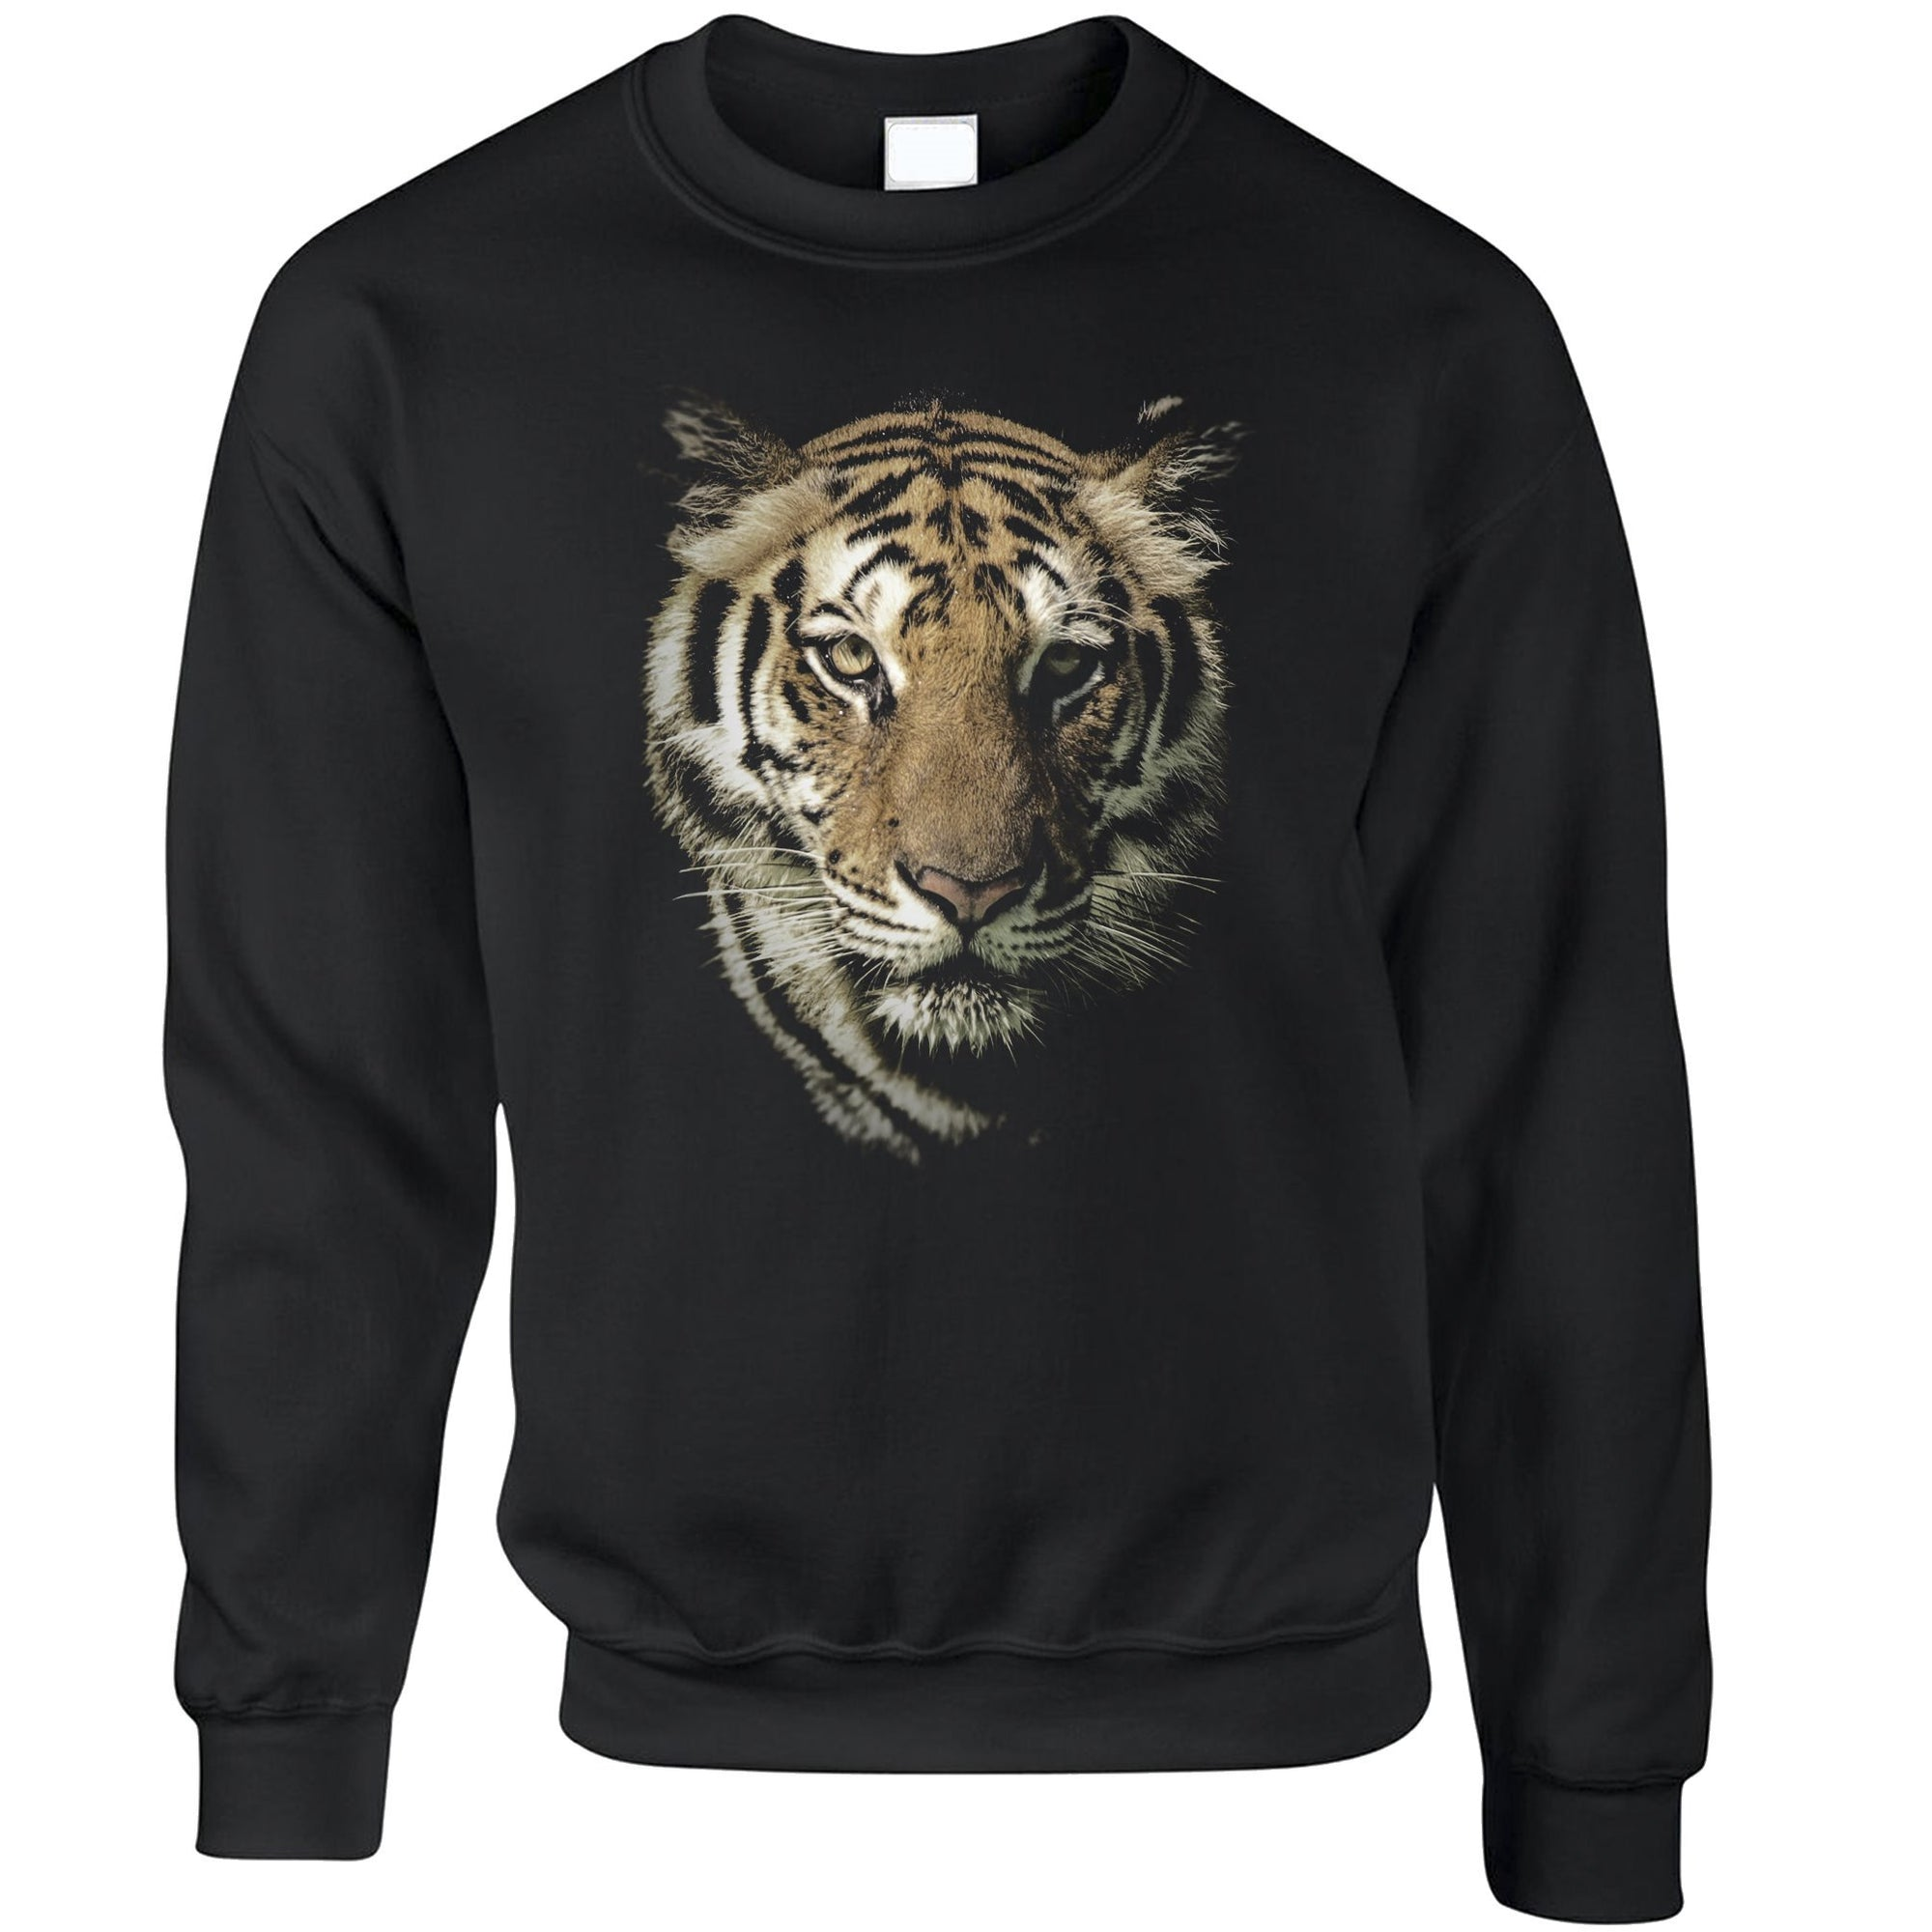 Tiger Face Sweatshirt Majestic Big Cat Head